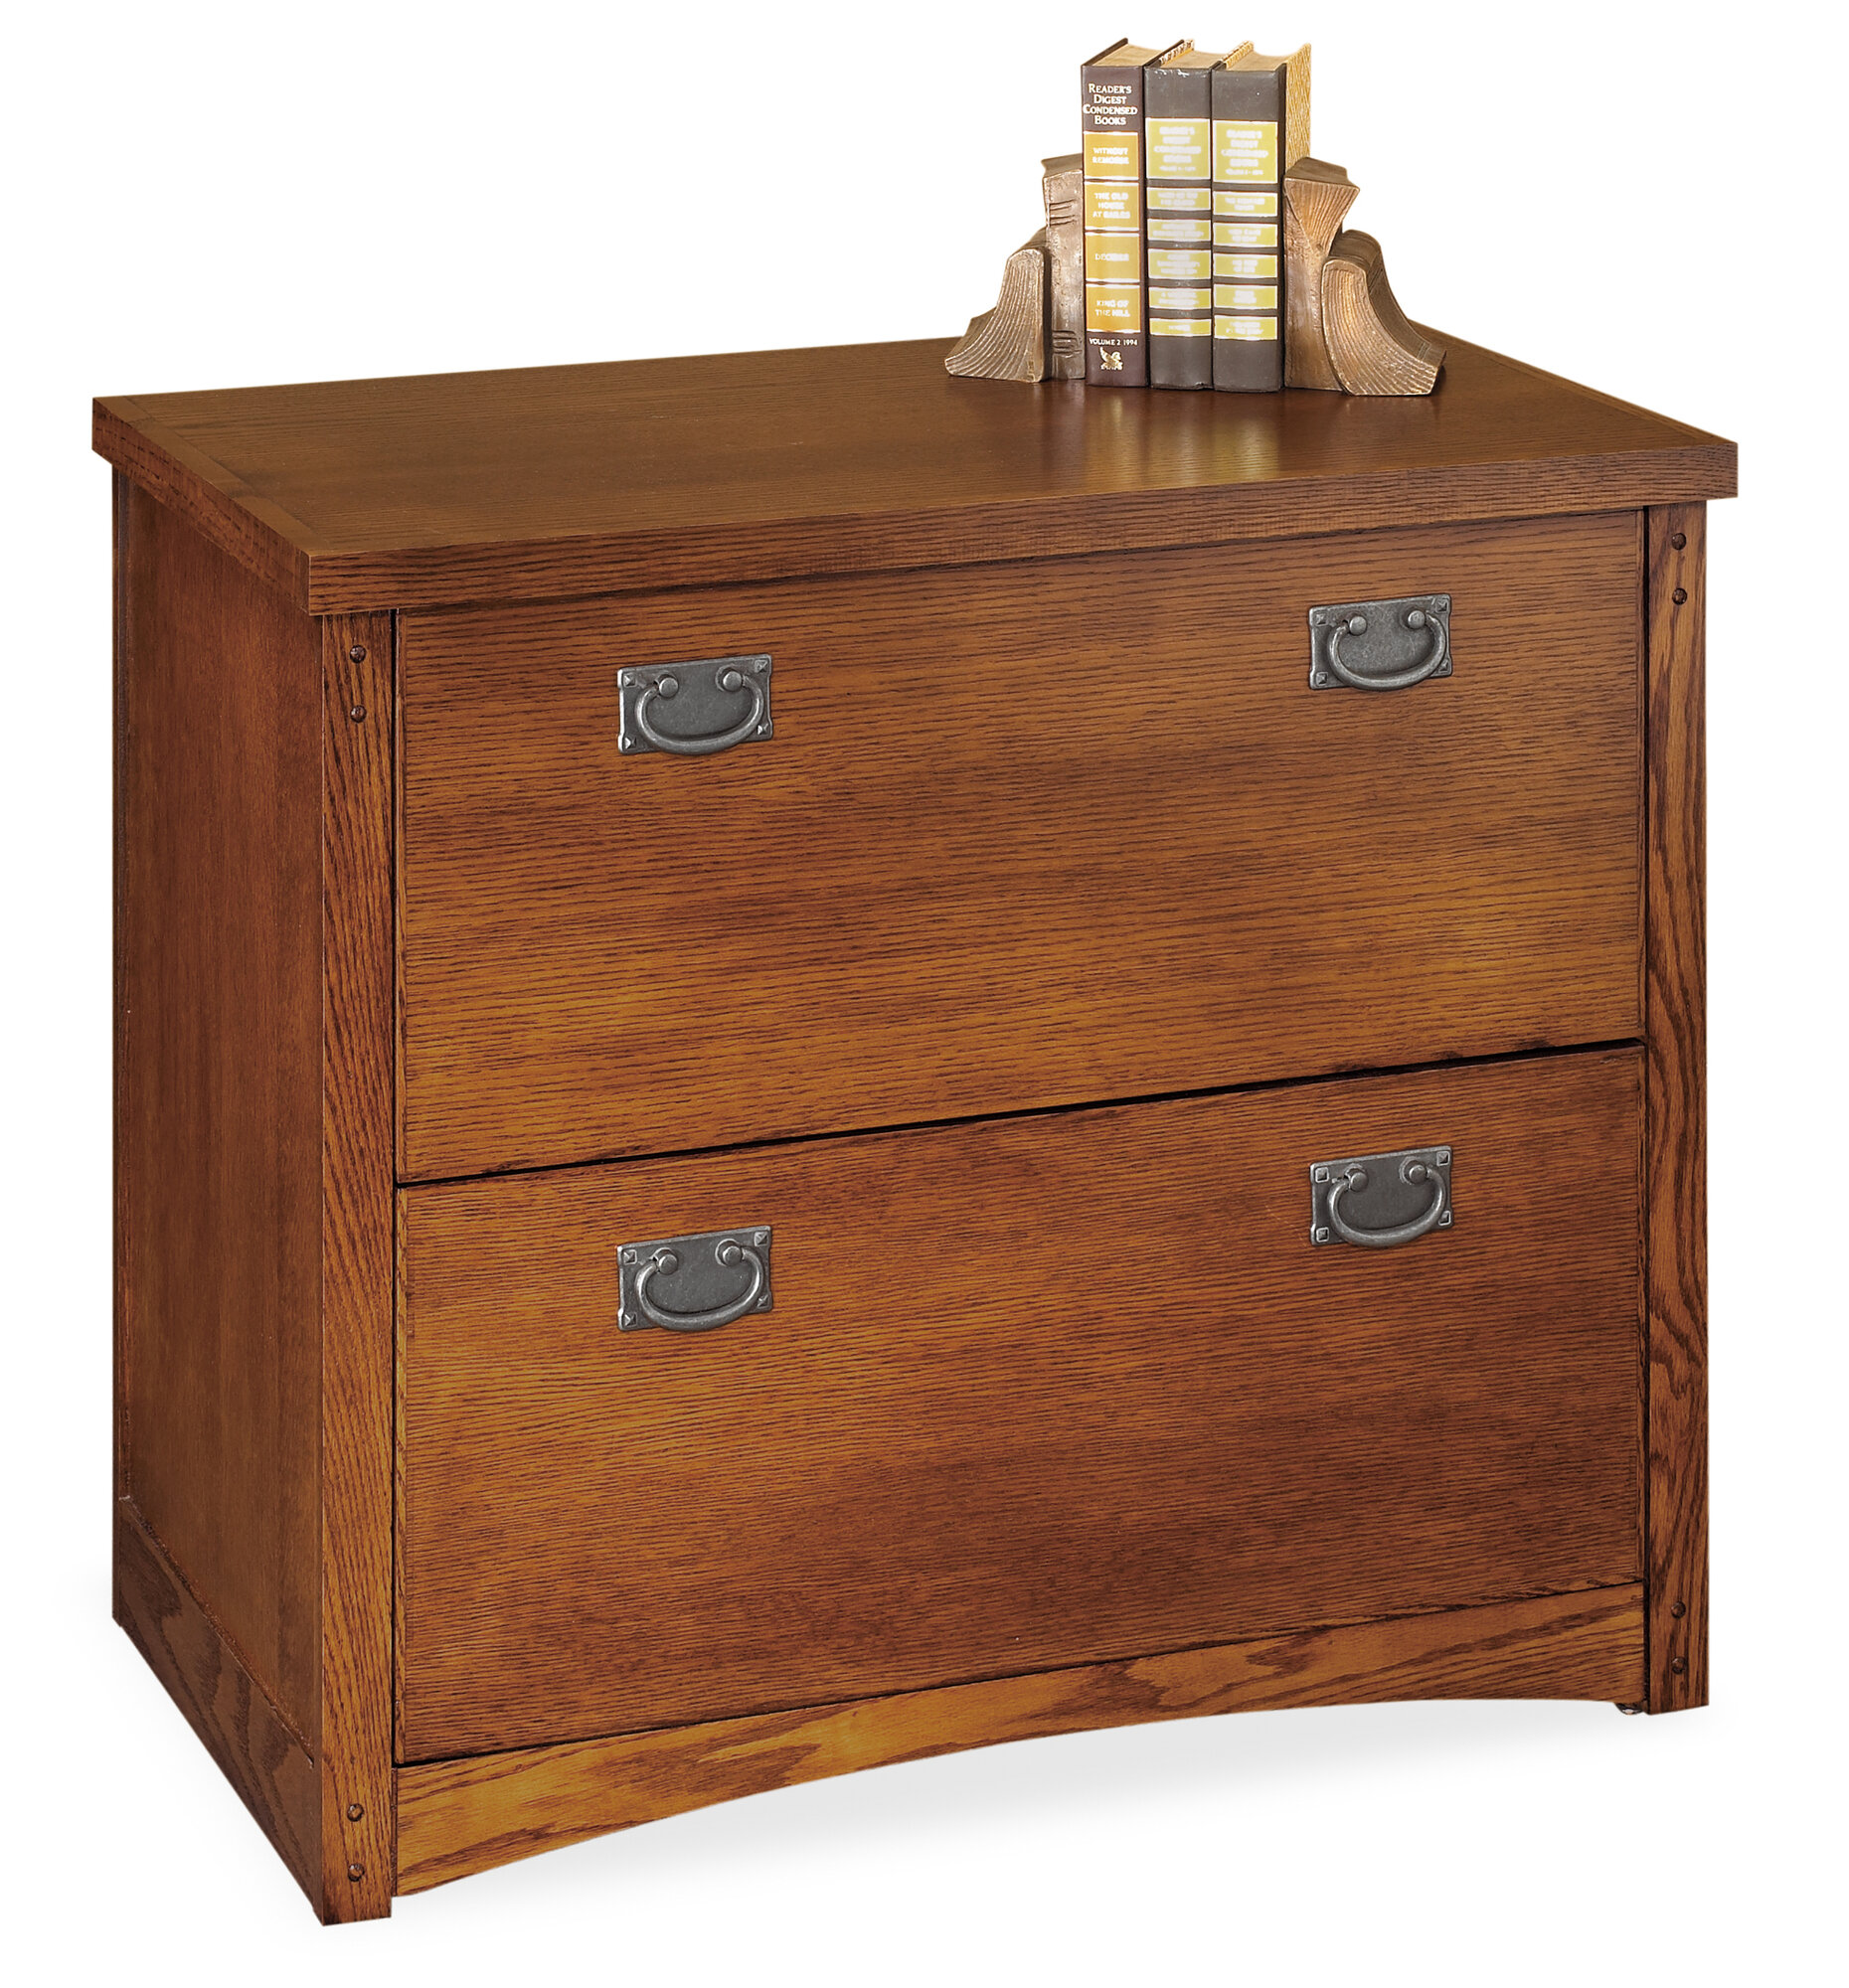 Details About Millwood Pines Benno 2 Drawer Lateral File Cabinet